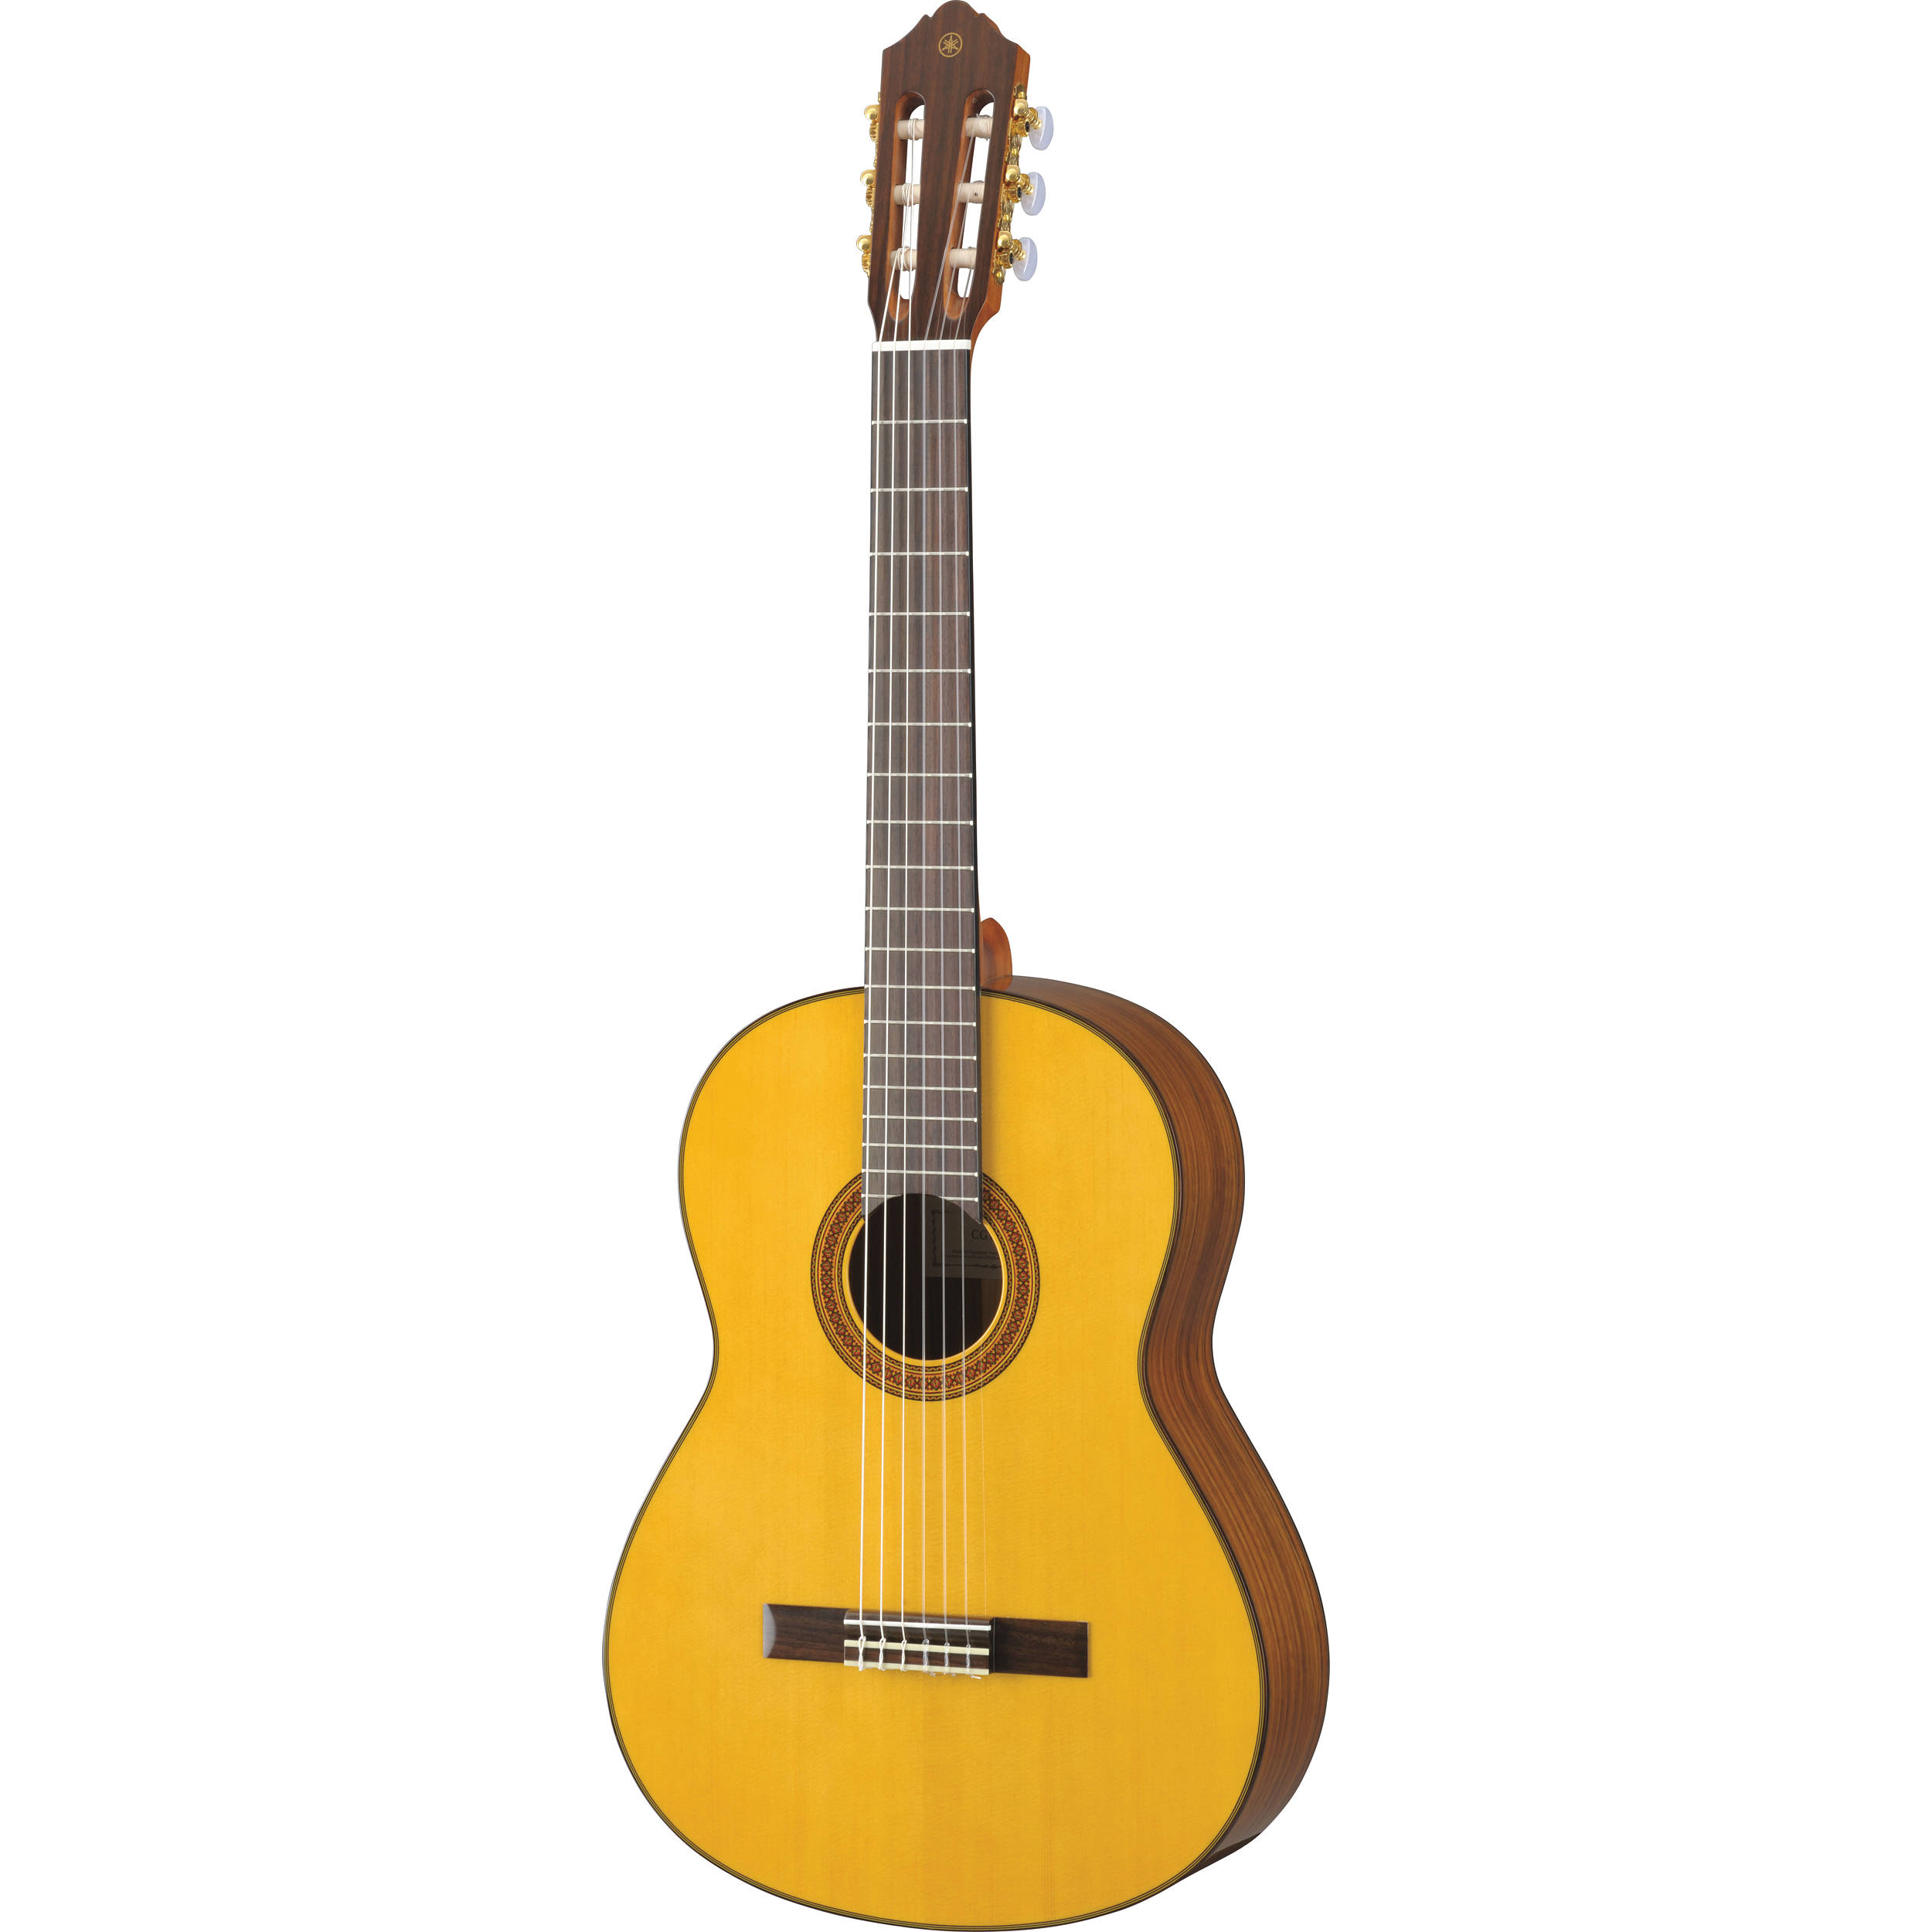 yamaha cg162s nylon string classical guitar cg162s b h photo. Black Bedroom Furniture Sets. Home Design Ideas